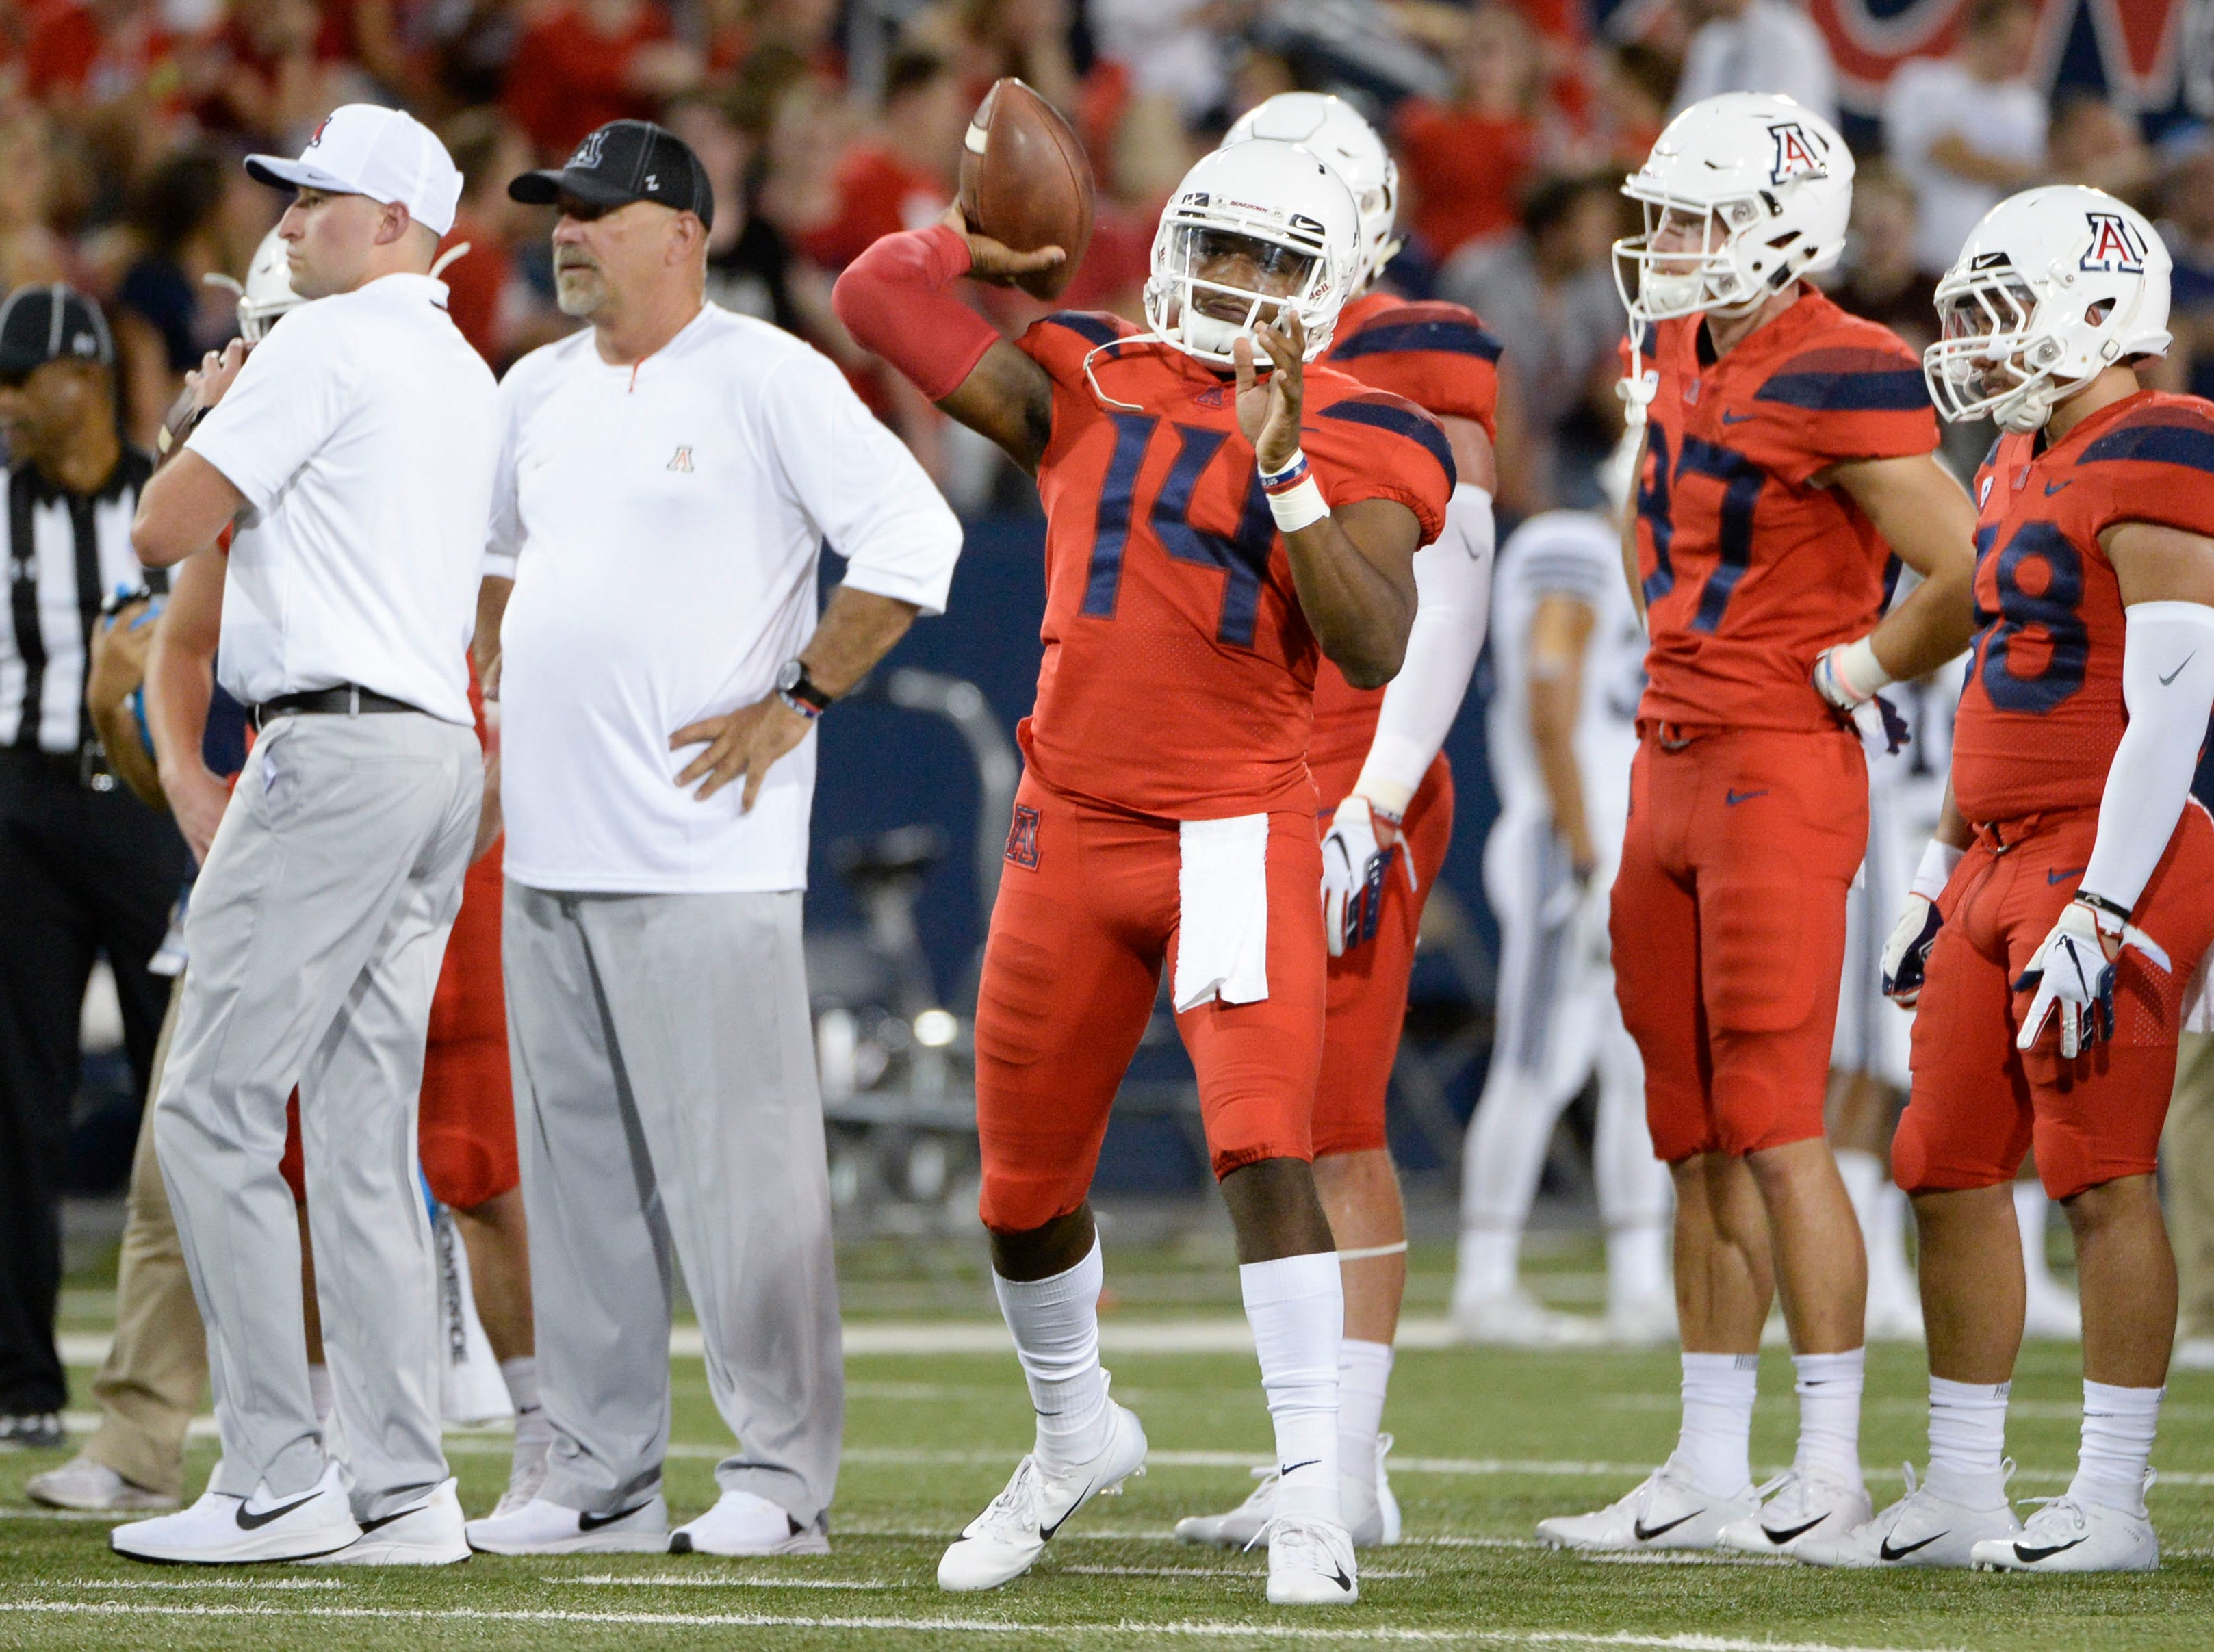 Sep 1, 2018; Tucson, AZ, USA; Arizona Wildcats quarterback Khalil Tate (14) passes the ball during warmups before playing the Brigham Young Cougars at Arizona Stadium.